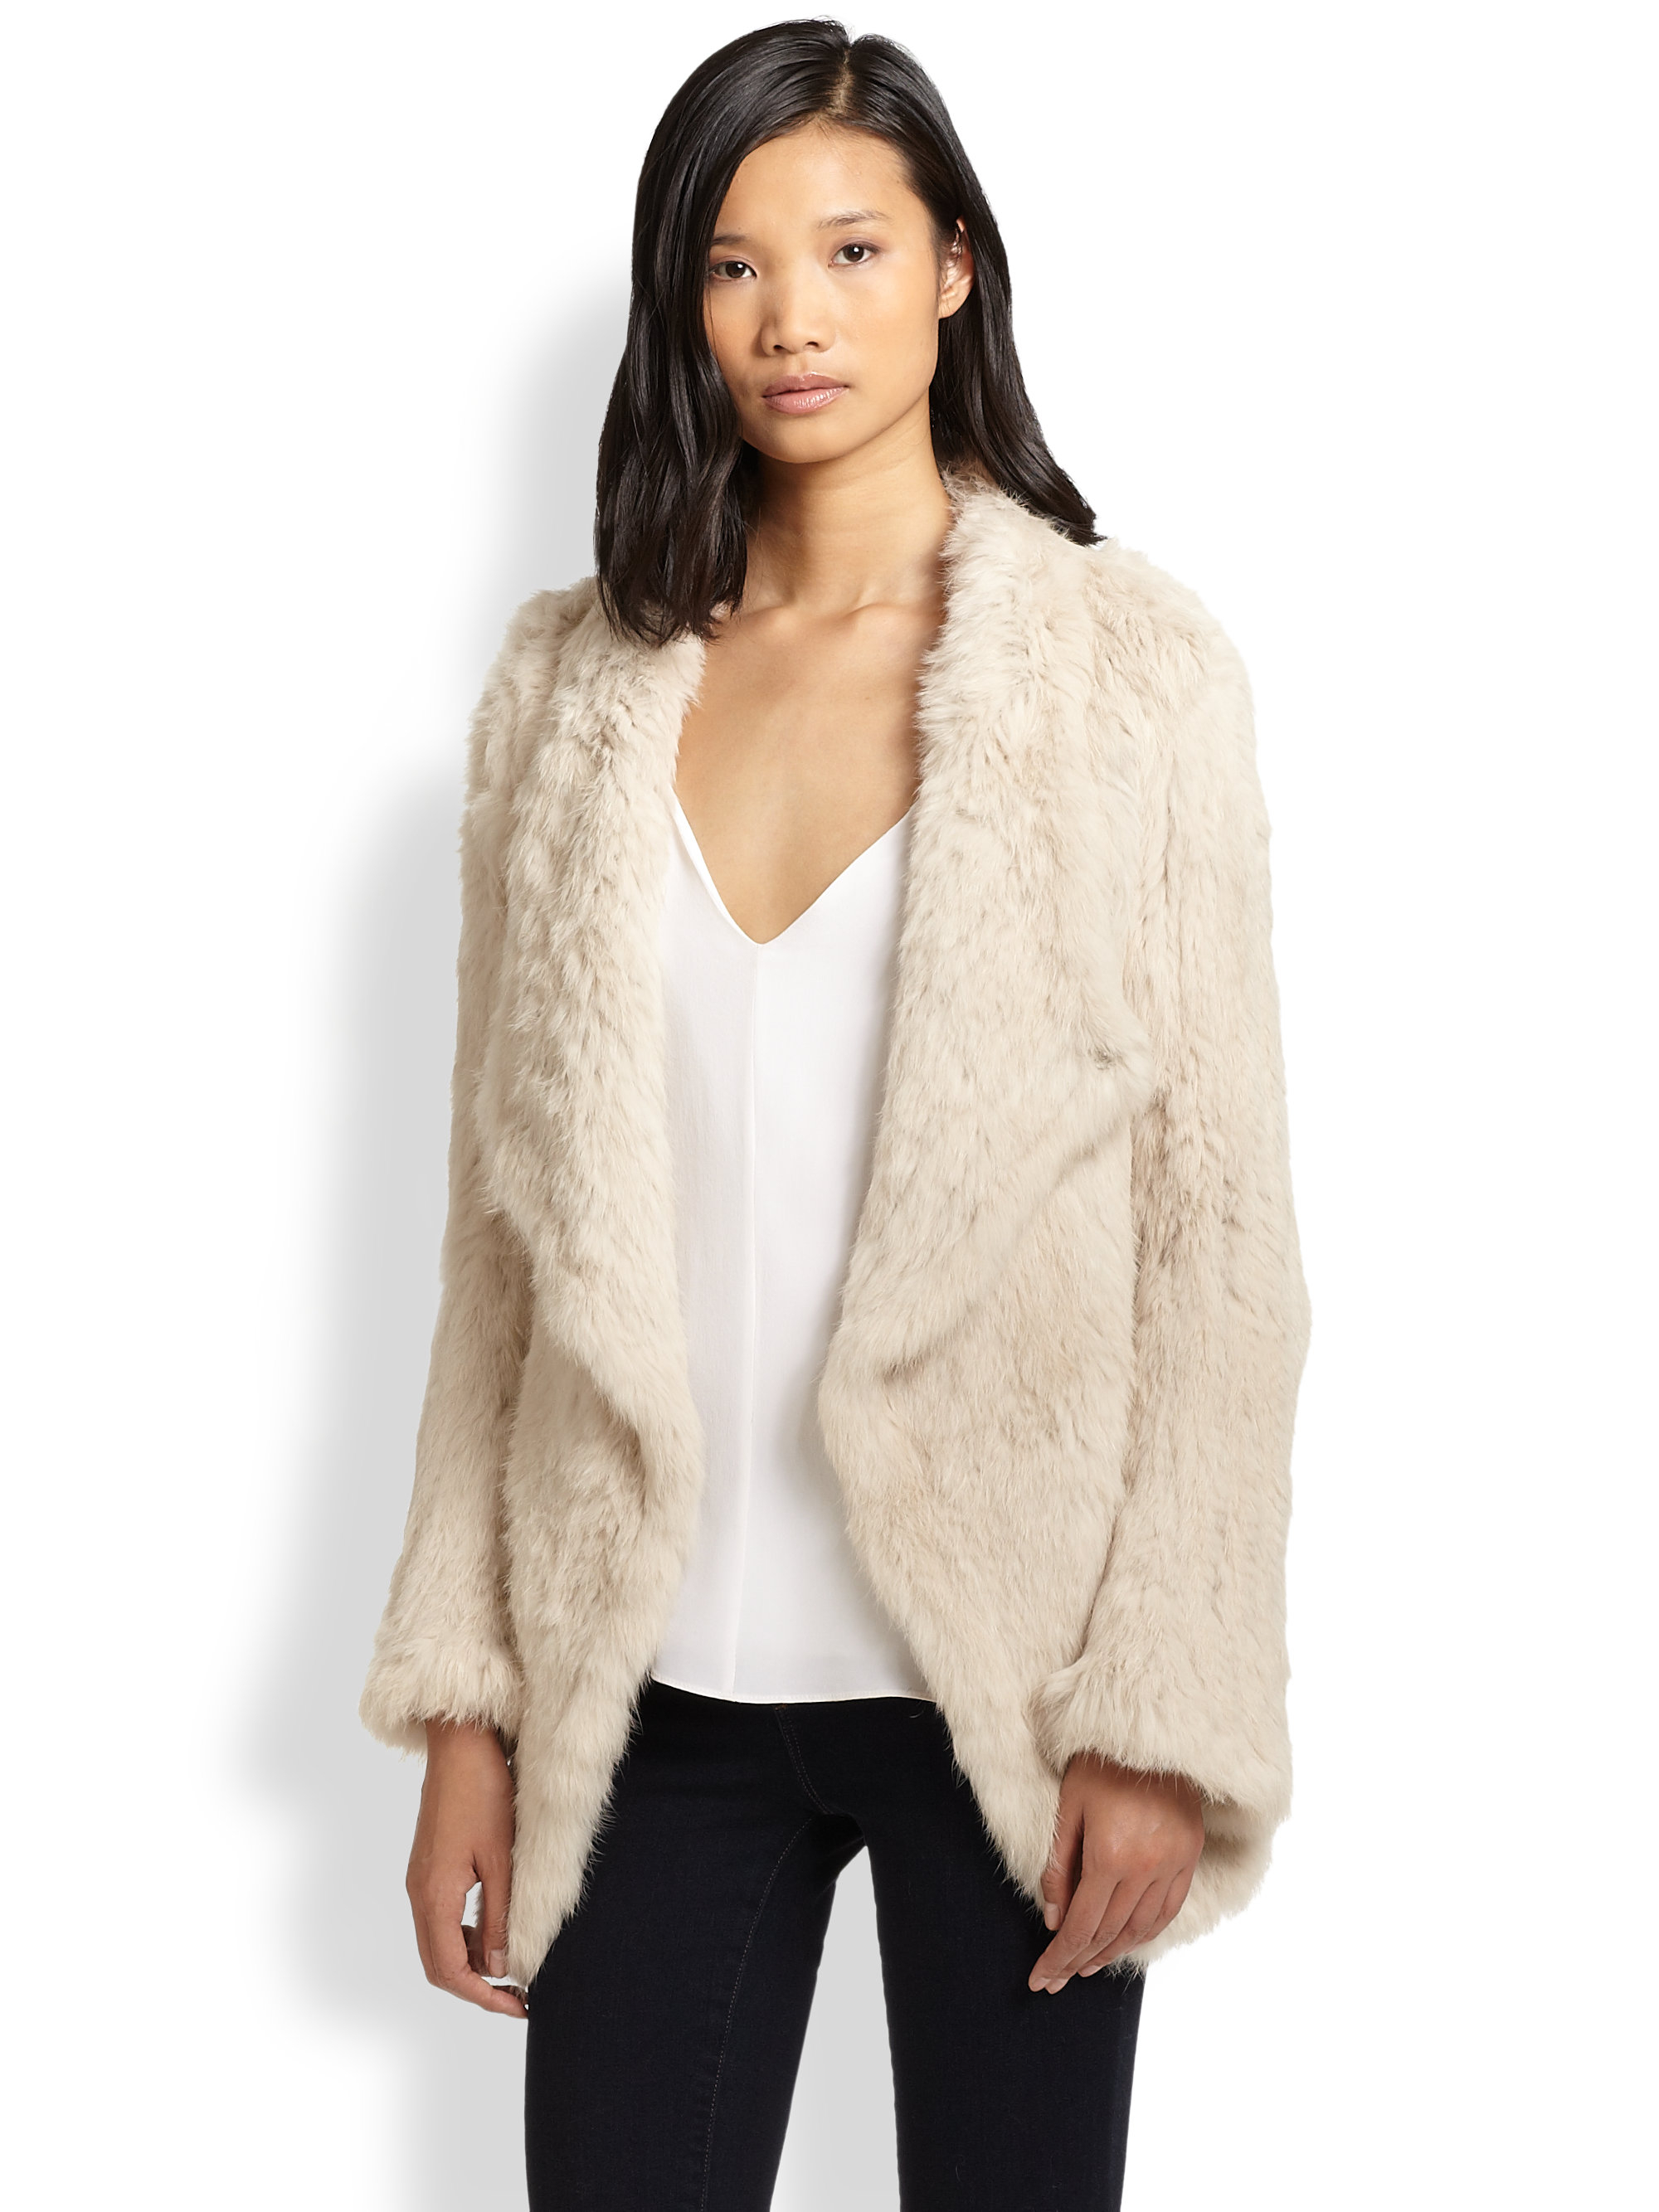 June Draped Rabbit Fur Jacket in Natural | Lyst